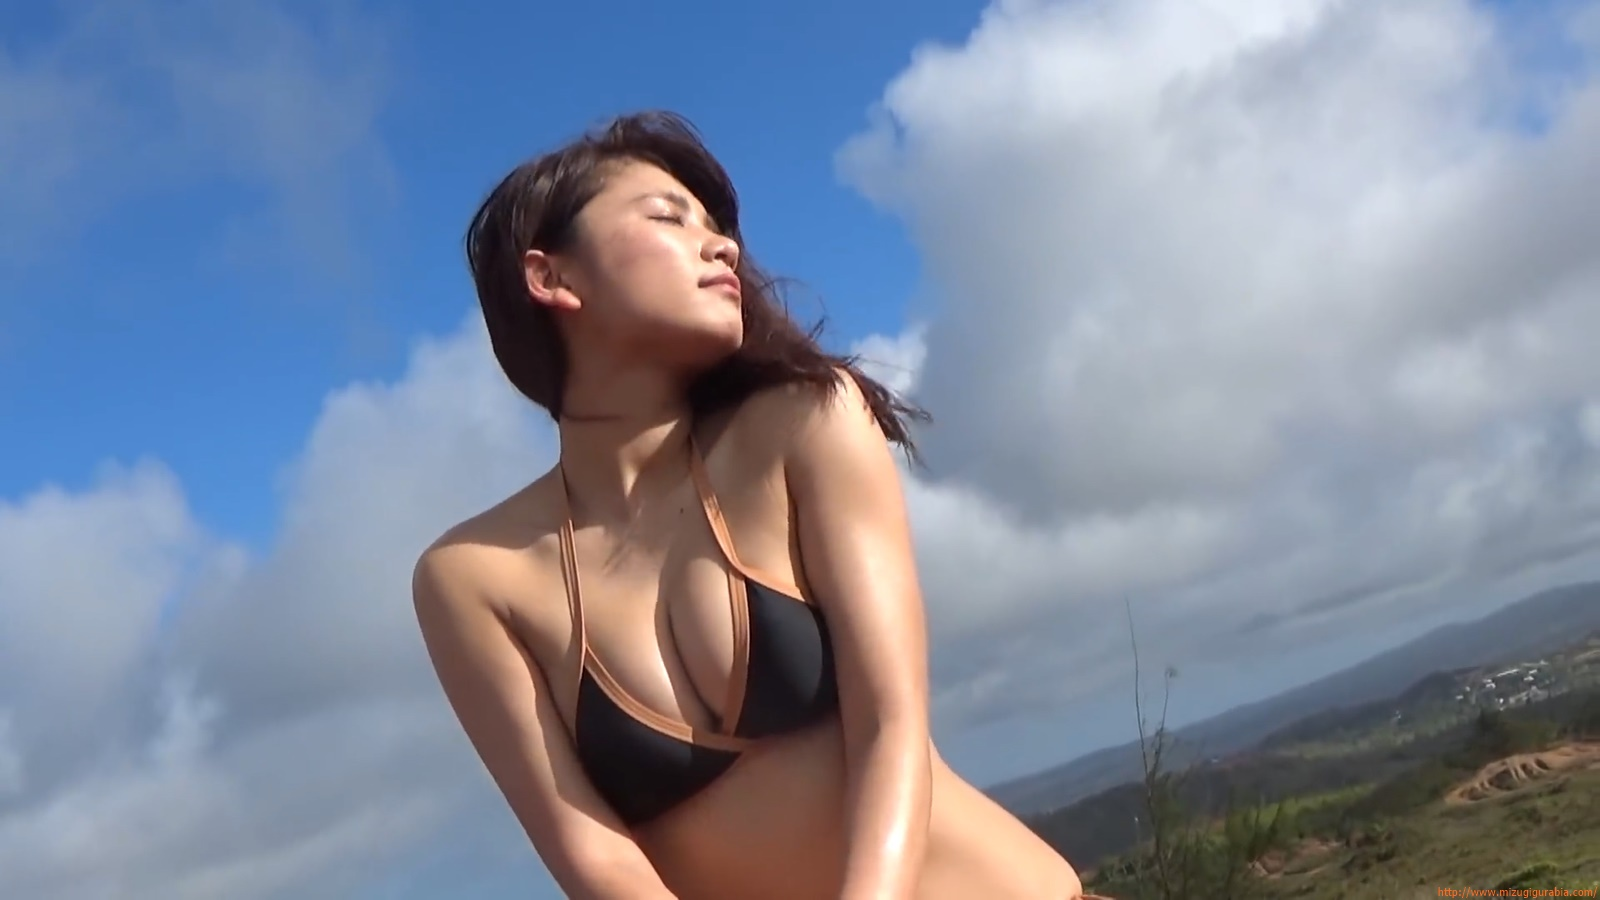 Shes a sunny bodice who continues to lead the way in gravure082